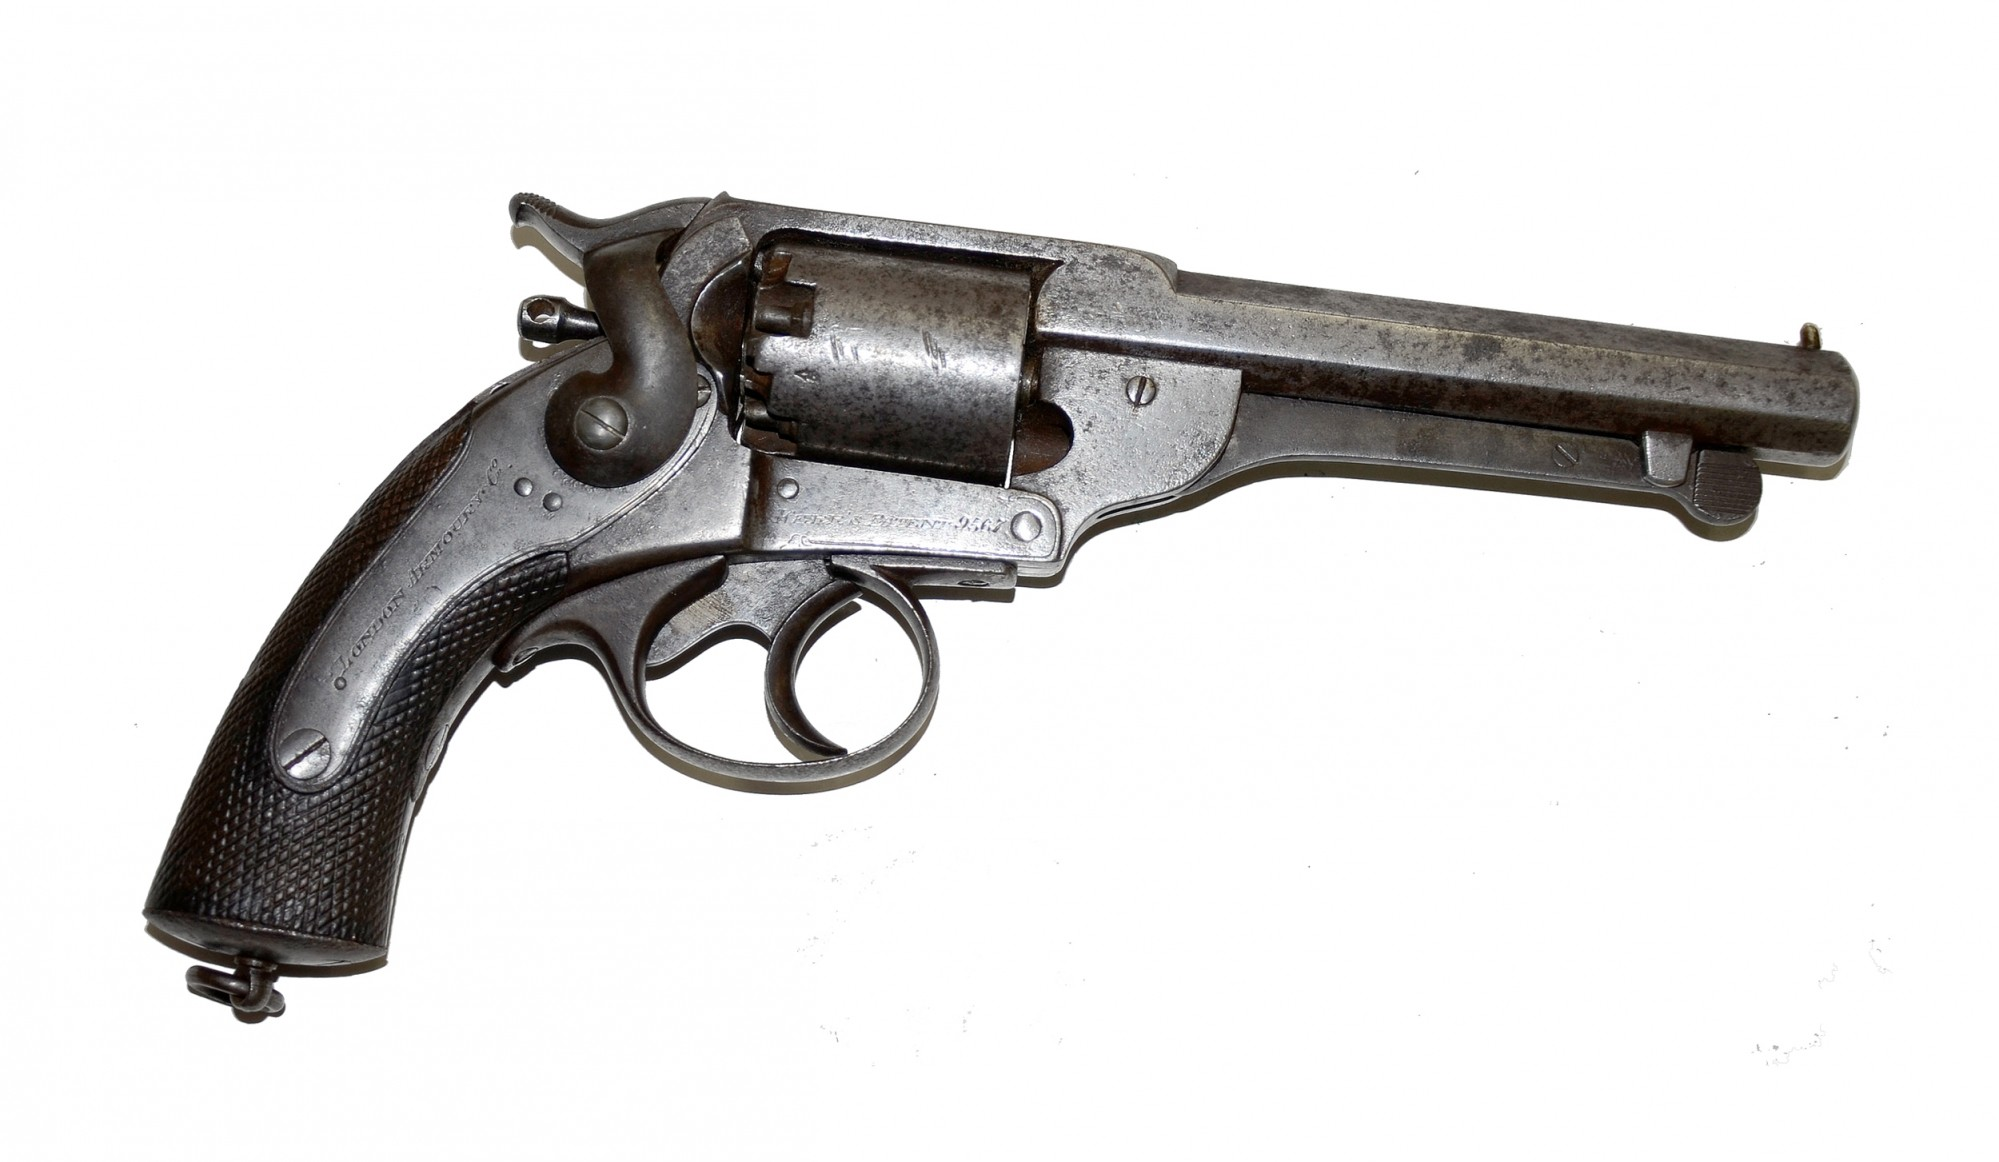 CONFEDERATE USED LONDON ARMOURY COMPANY KERR'S PATENT REVOLVER